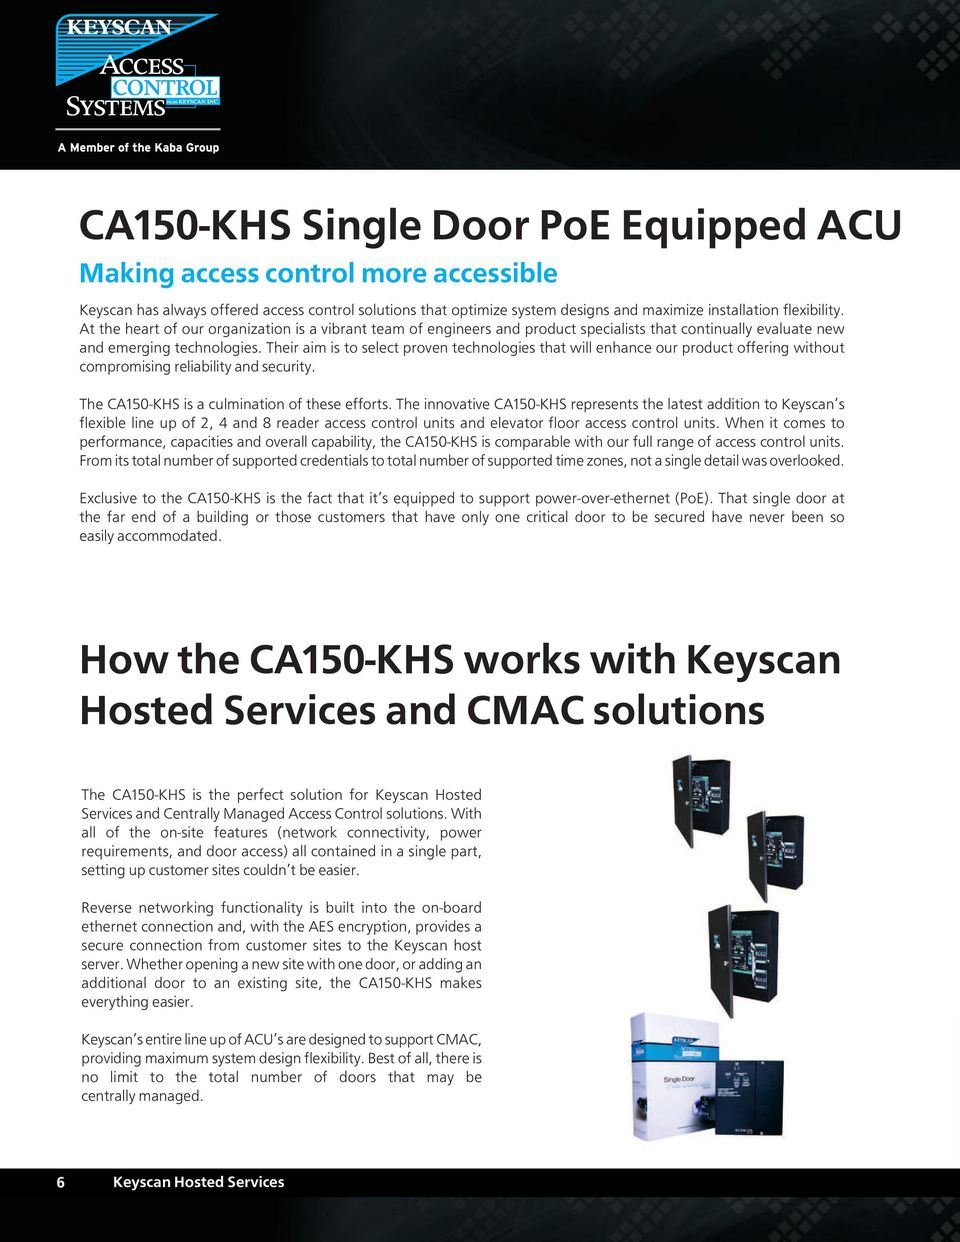 Their aim is to select proven technologies that will enhance our product offering without compromising reliability and security. The CA150-KHS is a culmination of these efforts.